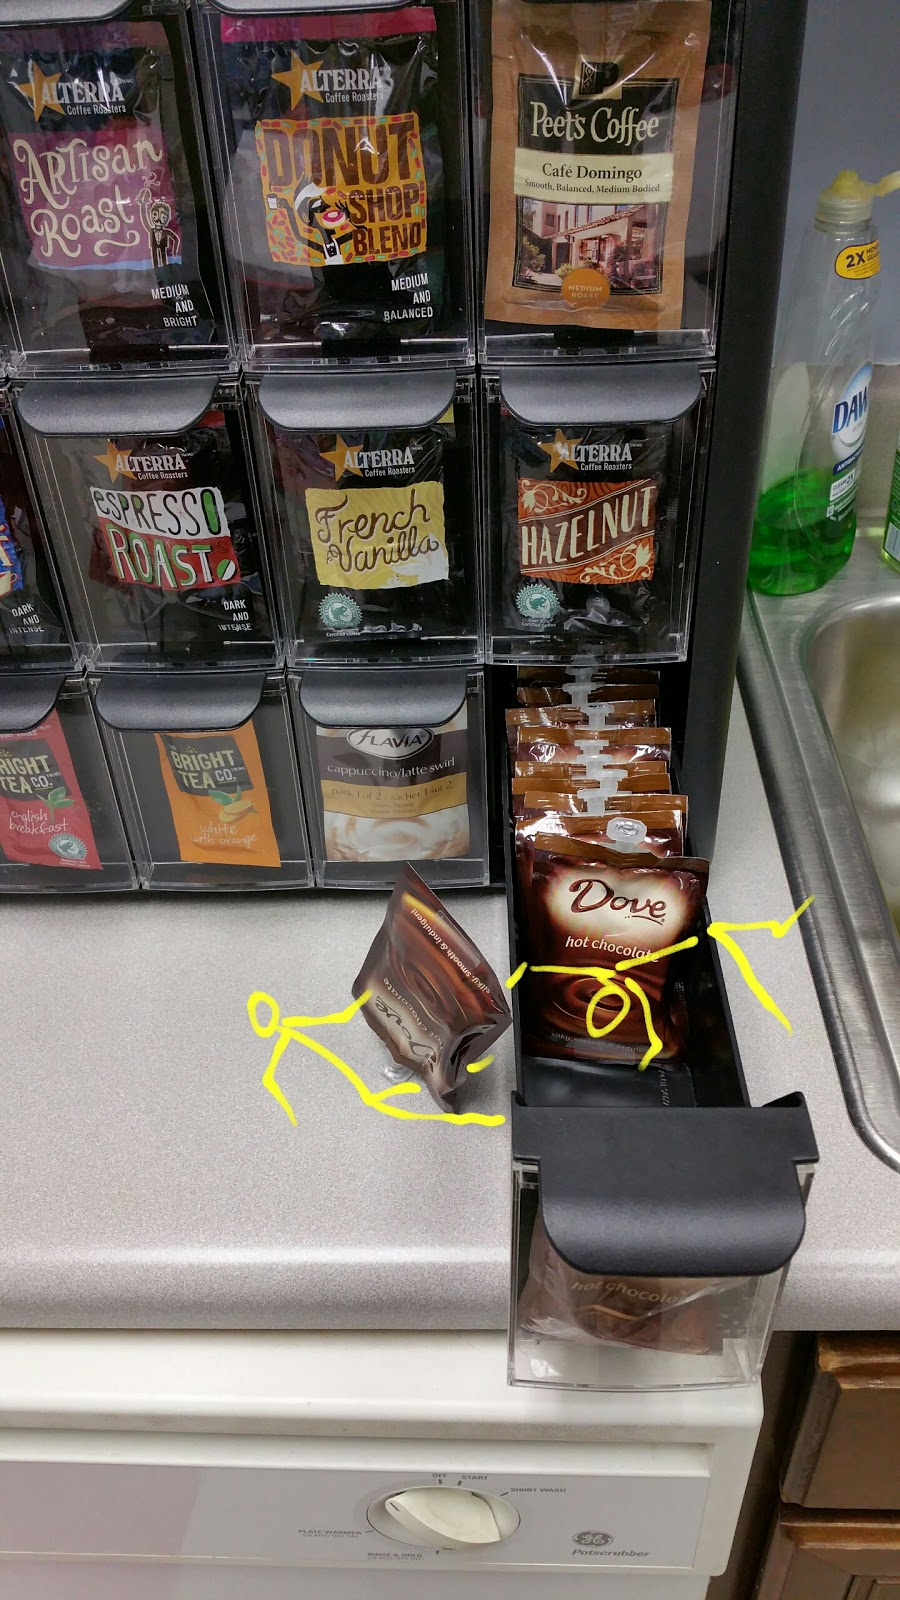 Oh oh, it looks like the #coffeesticks had a little accident